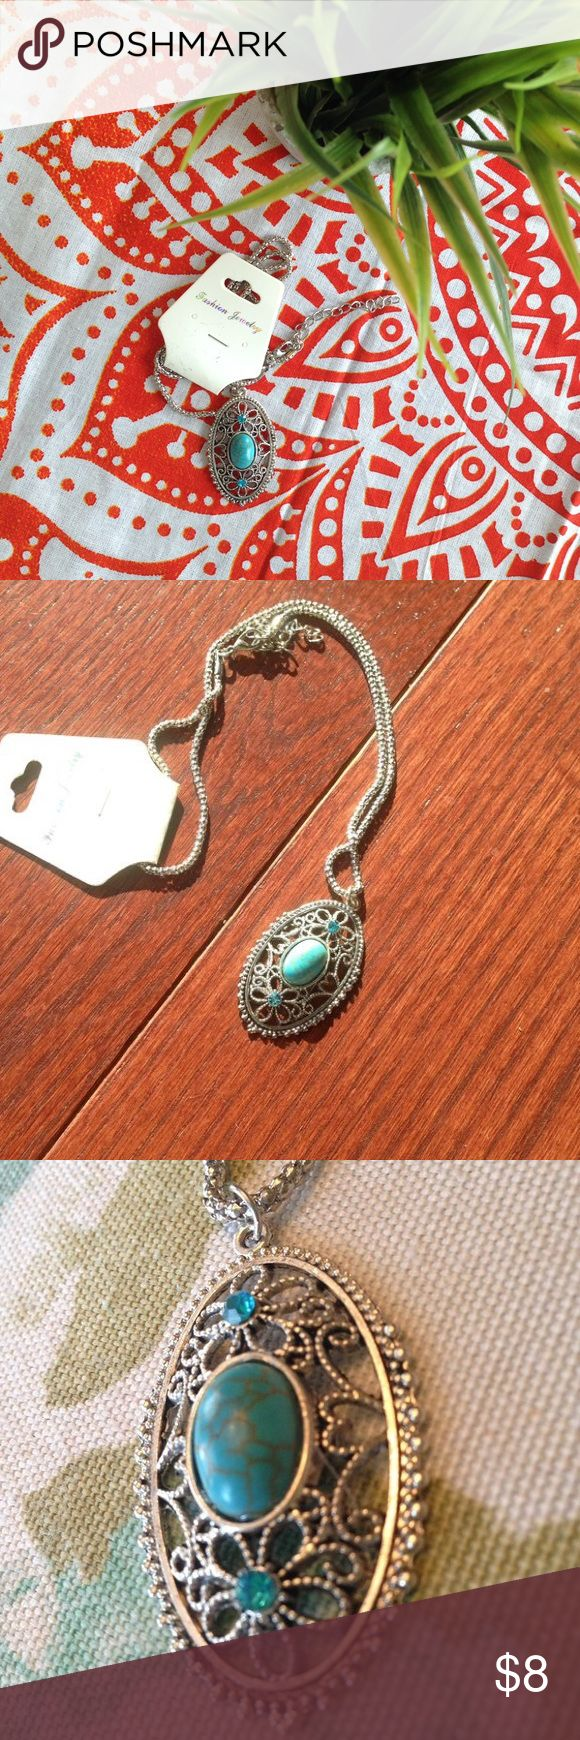 Necklace with the faux turquoise pendant Shiny silver colored necklace with a turquoise looking false stone and teal gems. Never worn. Chain is included. Jewelry Necklaces